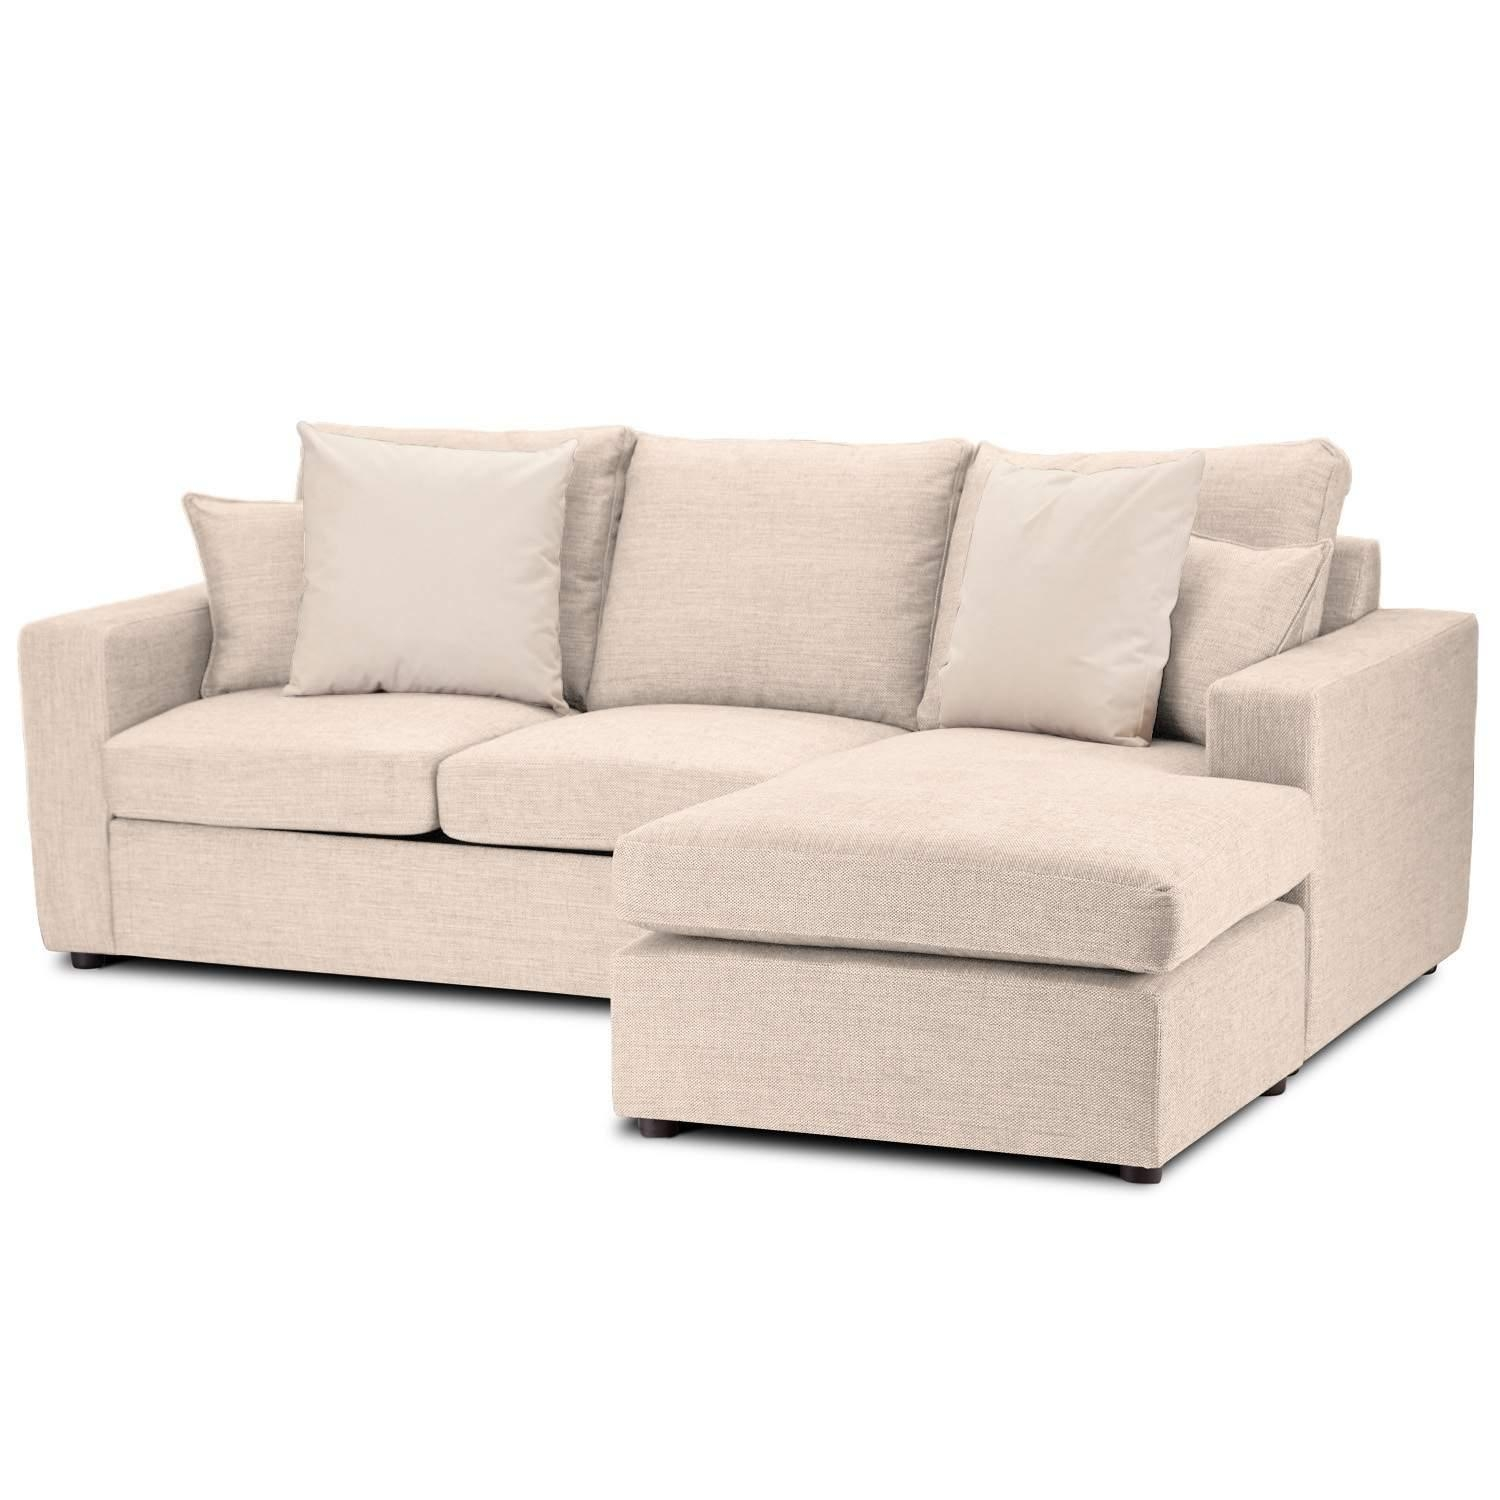 Furniture: Wrap Around Couch | Sears Furniture Outlet | Camden Sofa With Regard To Sears Sofa (View 6 of 20)